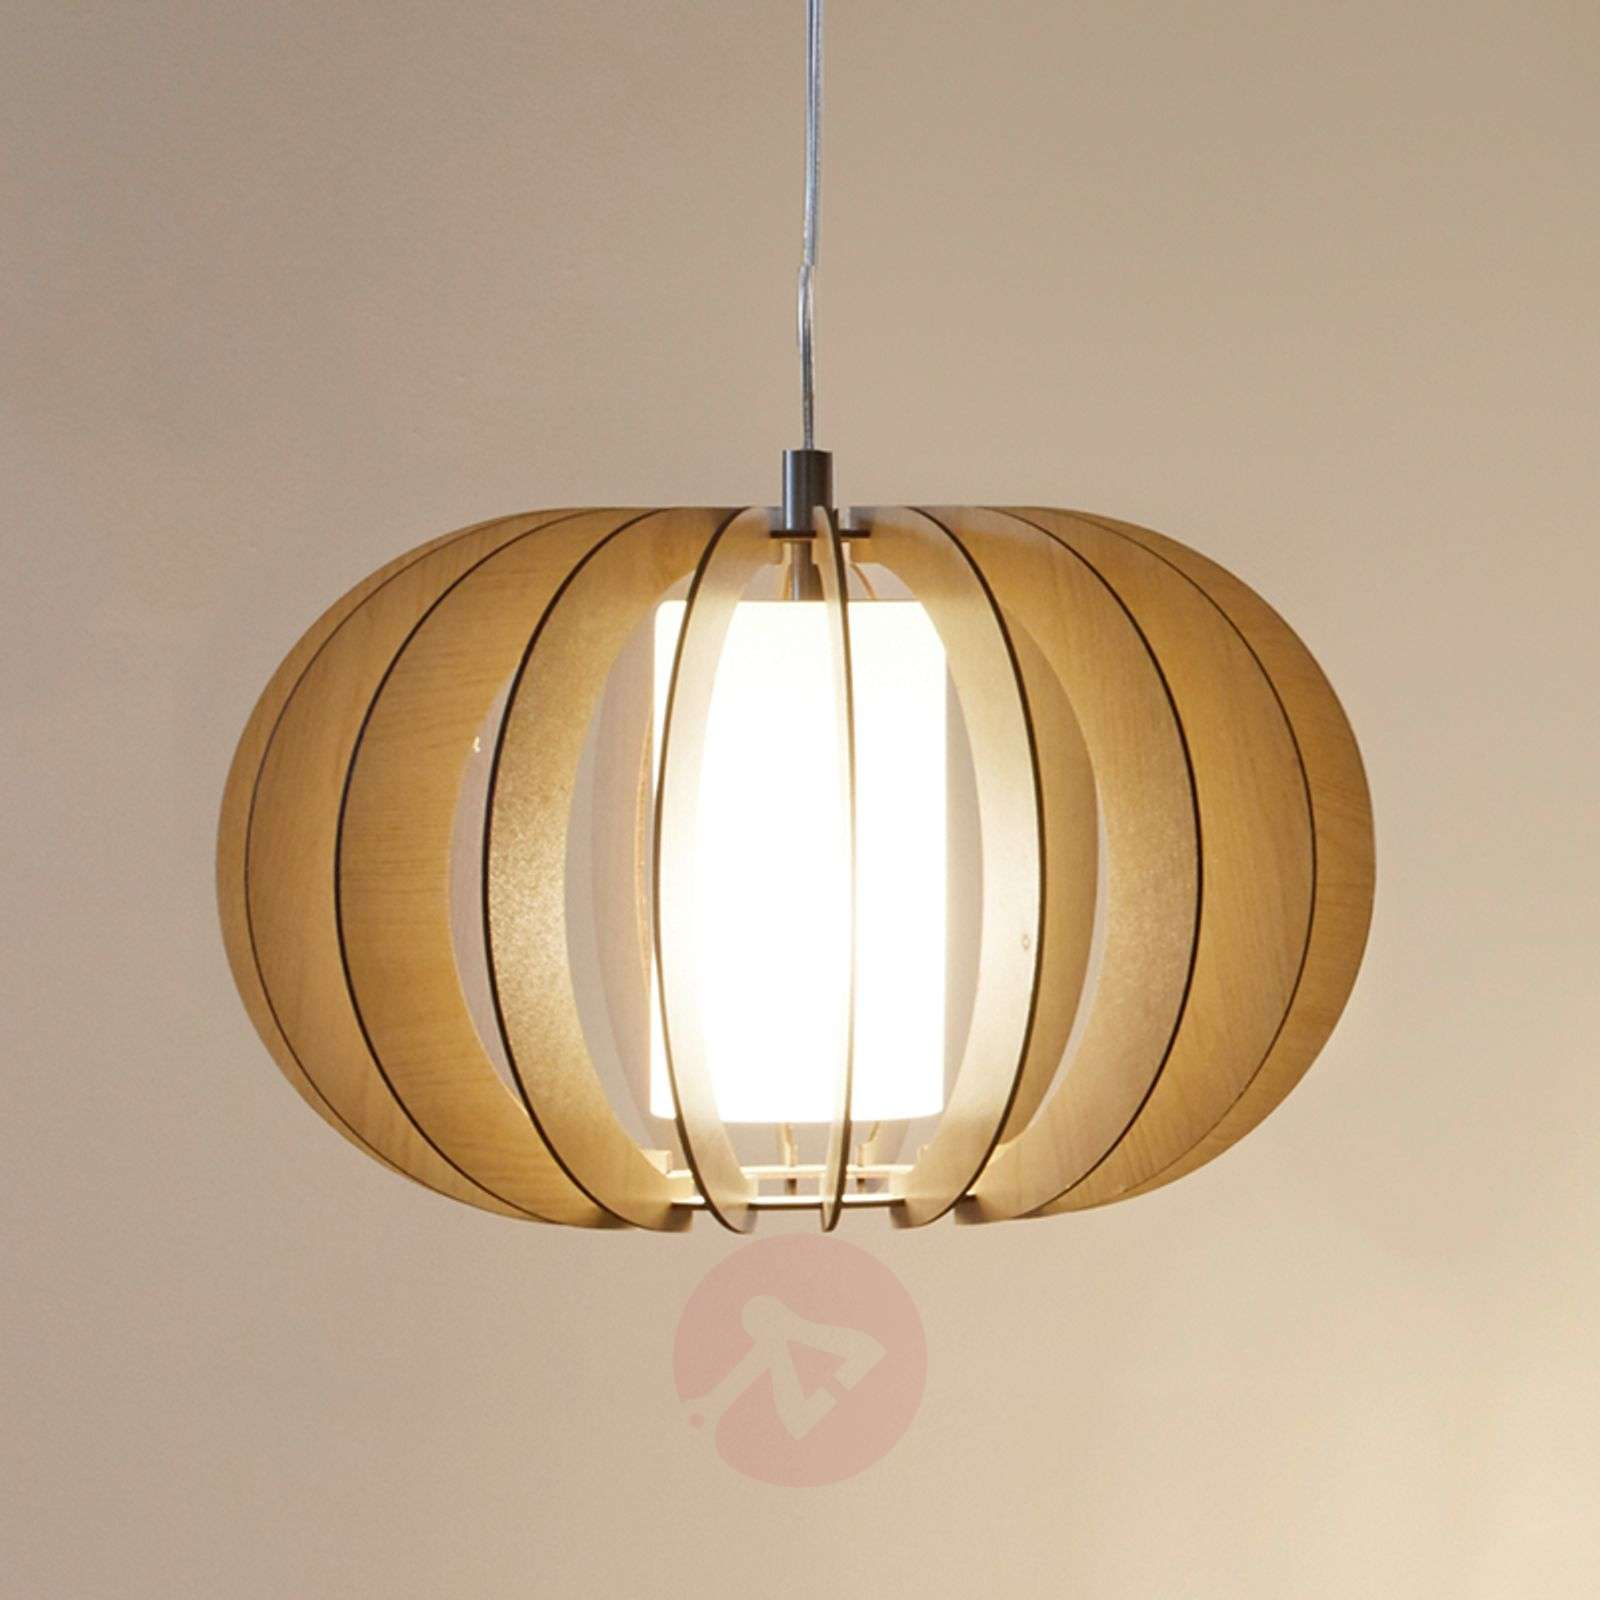 Suspension Stellato en bois brun, 40 cm